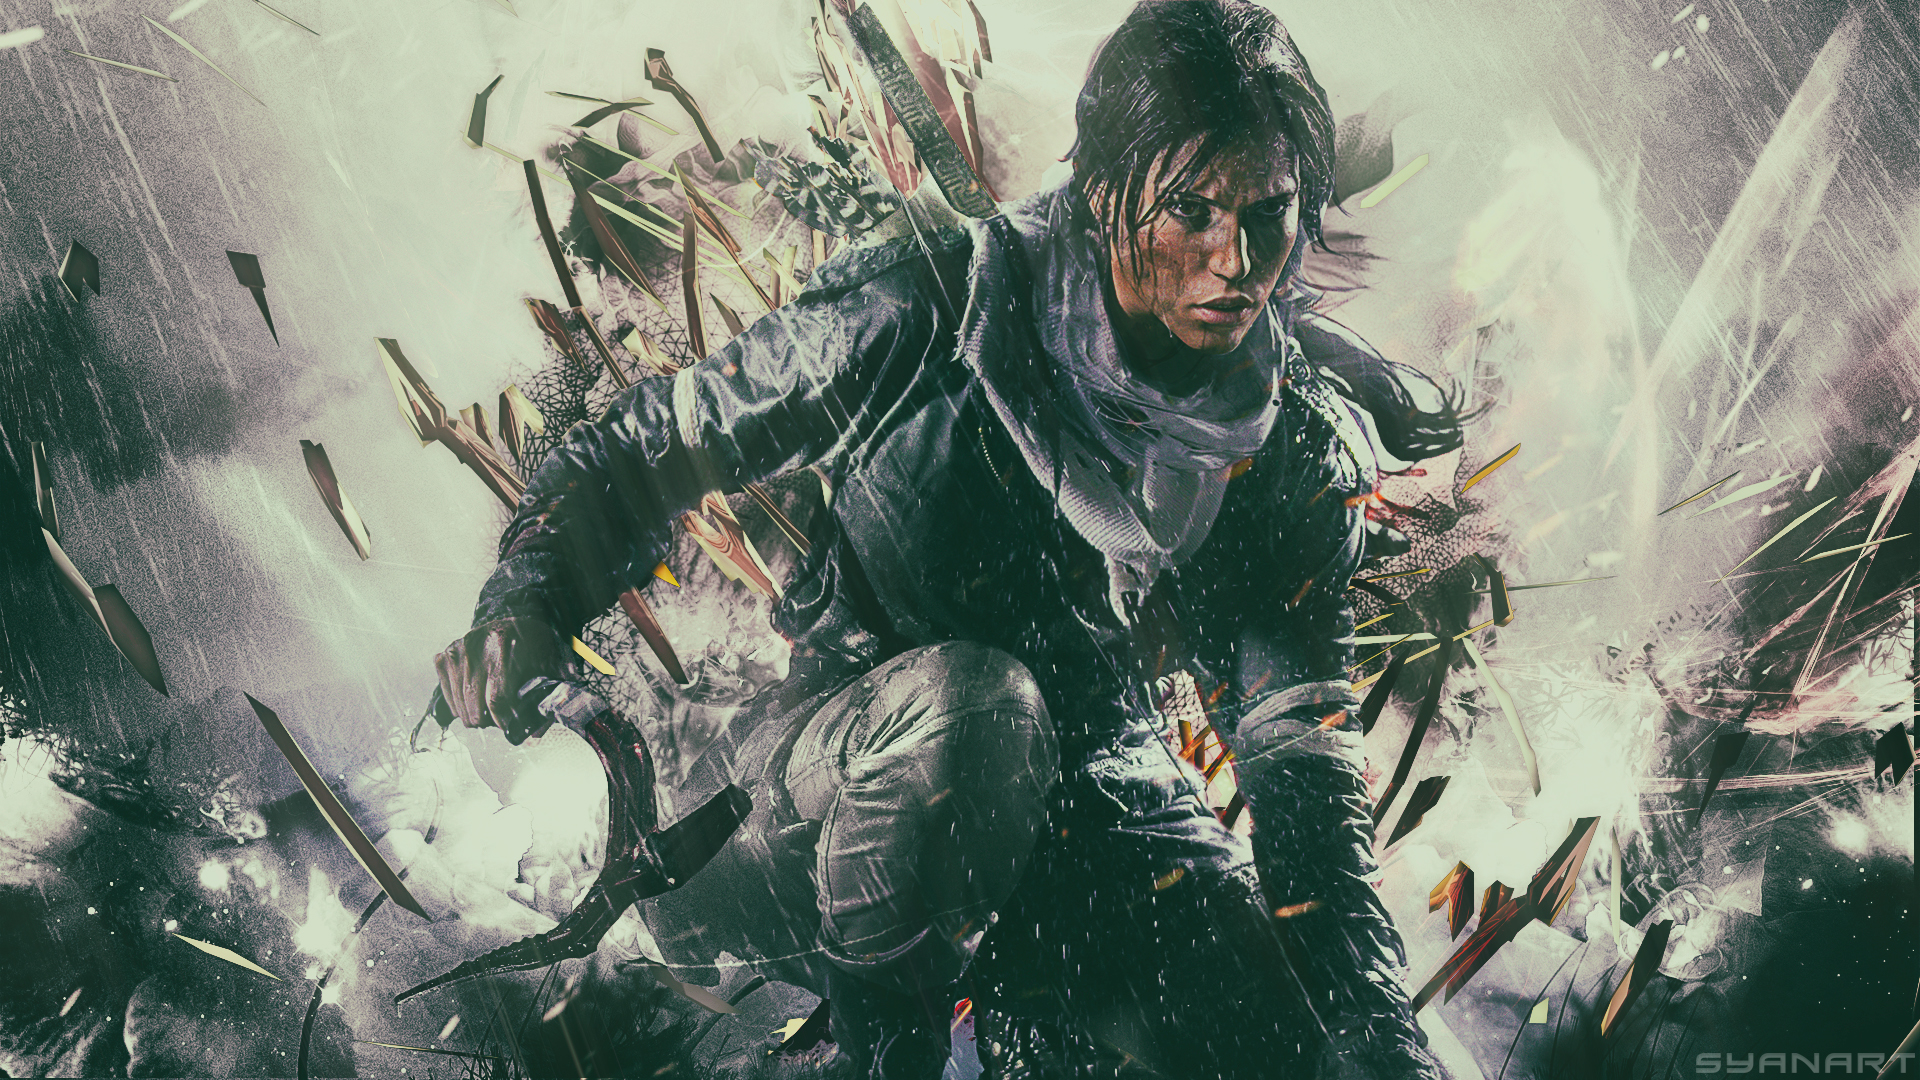 Free Download Rise Of The Tomb Raider Fullhd Wallpaper Syanart